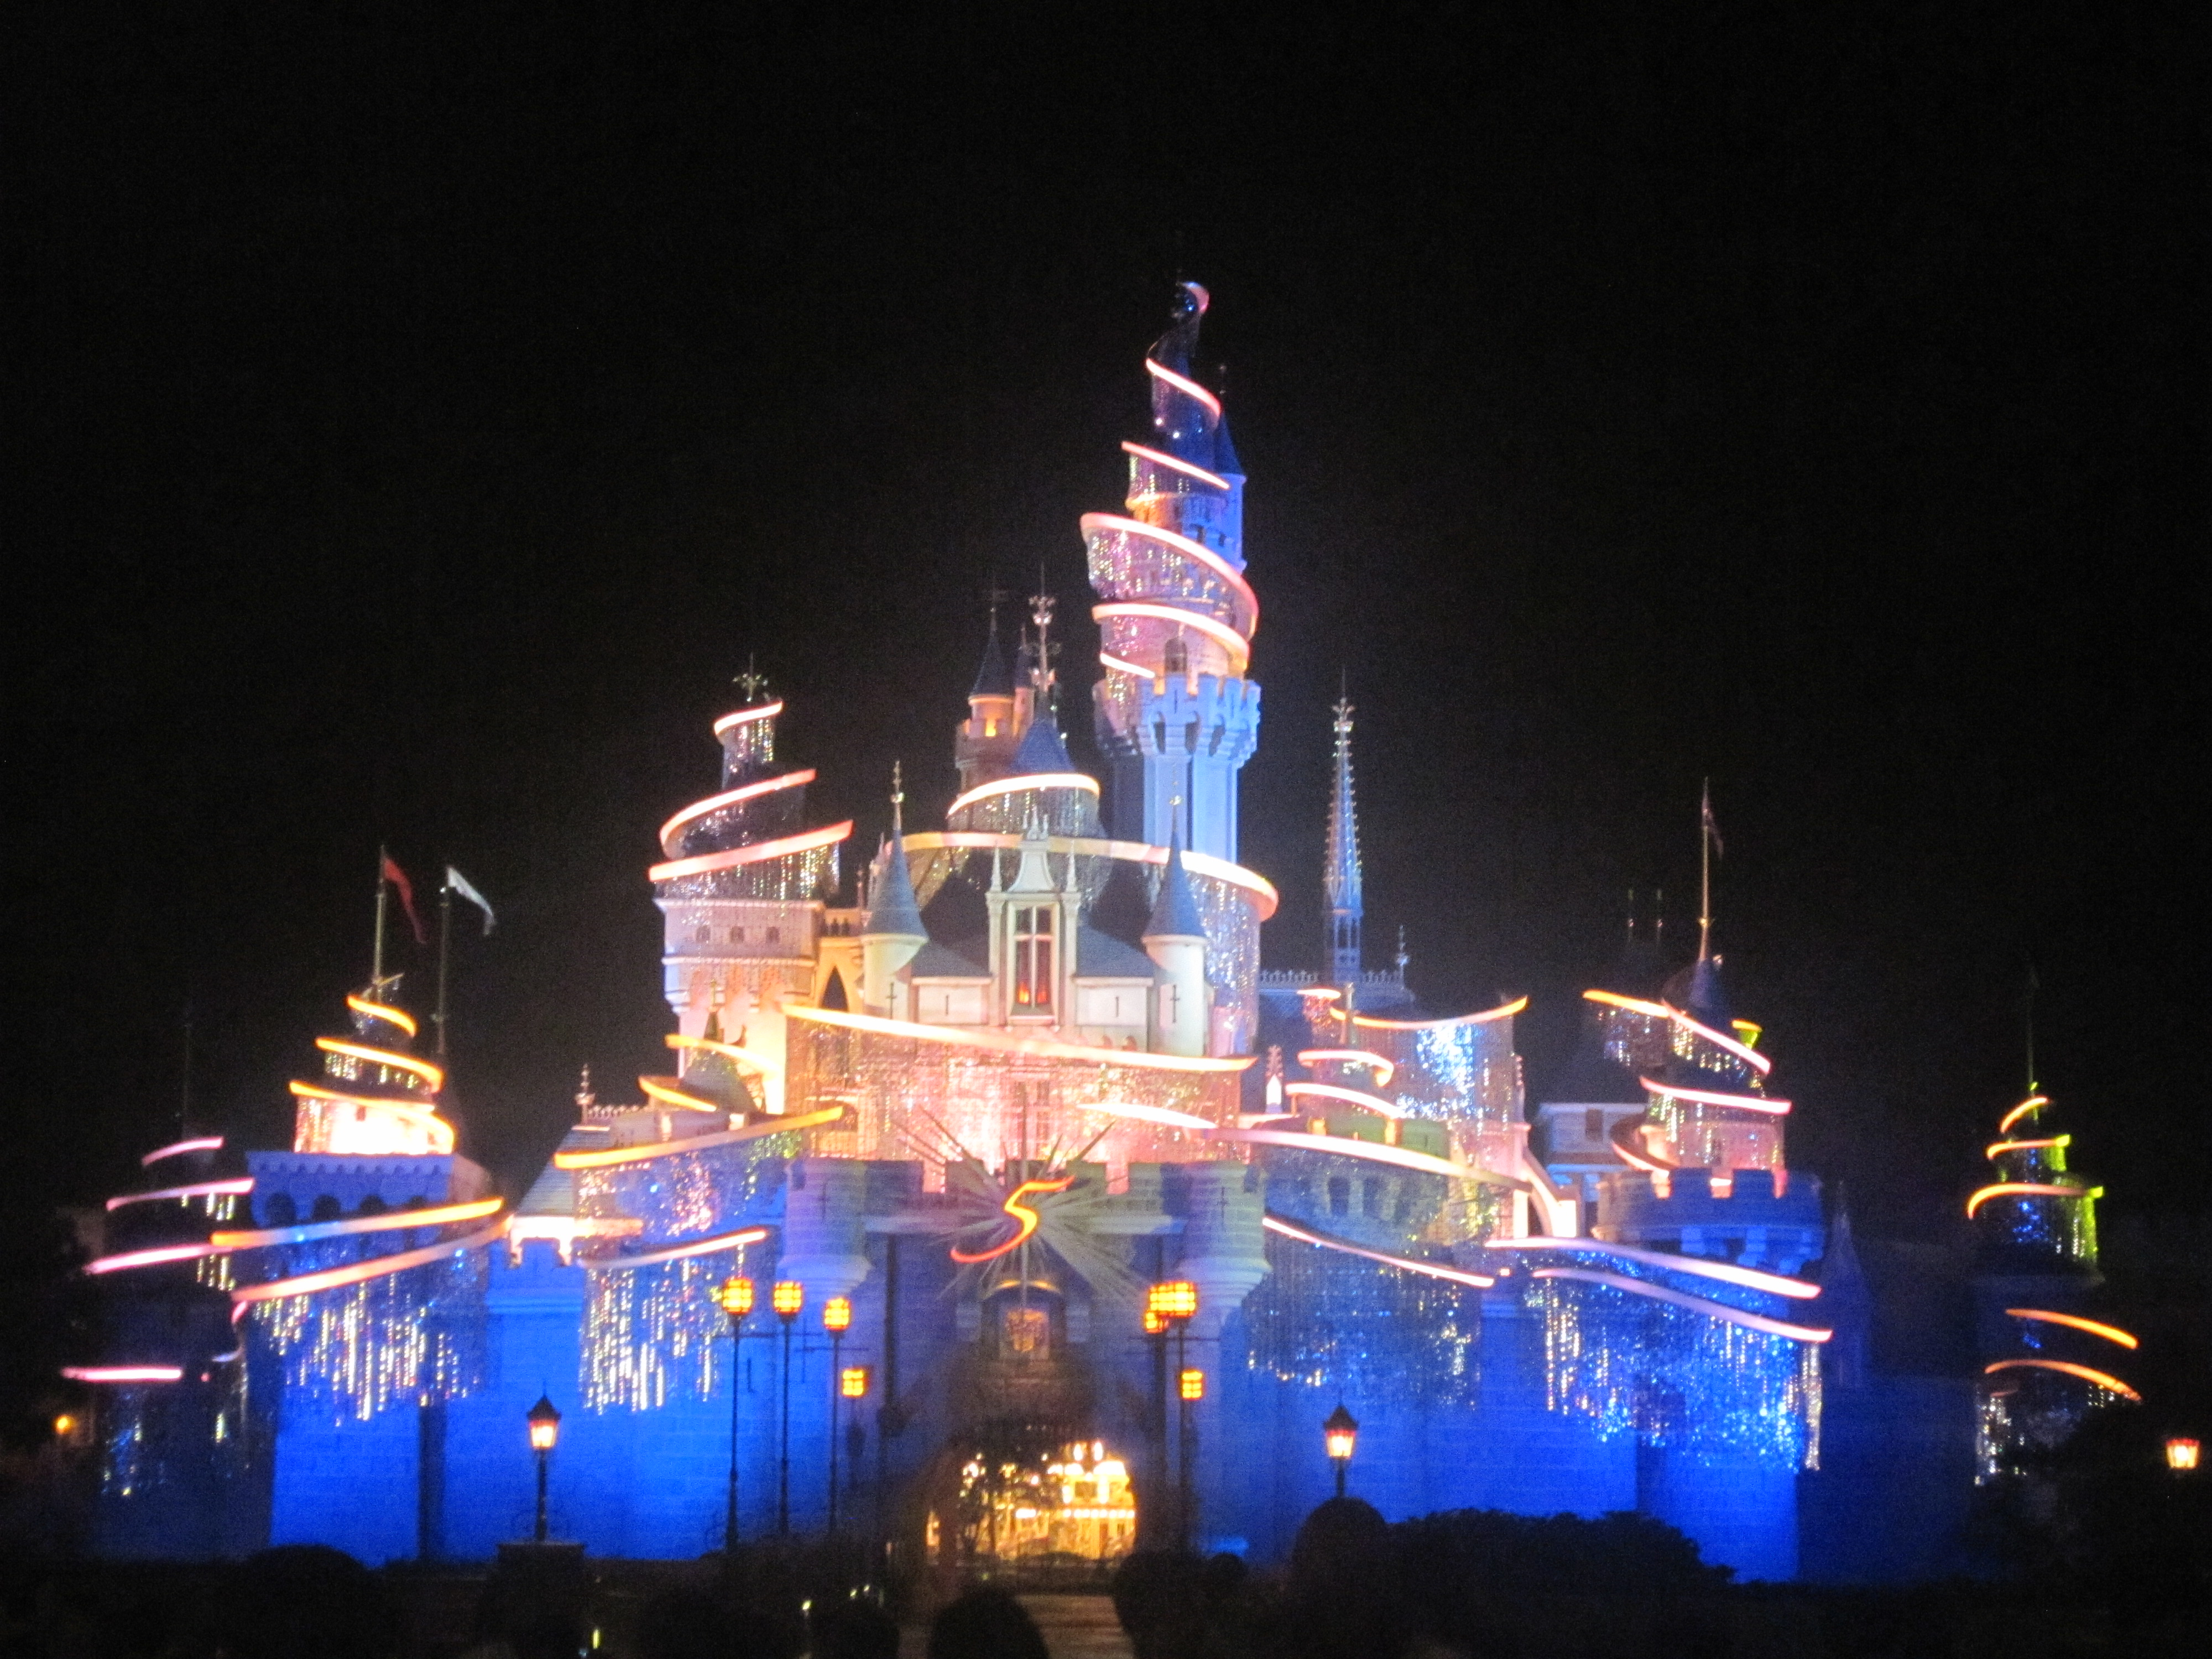 disneyland in hk Get huge discounts on disney dining with an exclusive coupon for hong kong disneyland restaurants: 2-in-1 meal and drink discount or a child meal coupon.